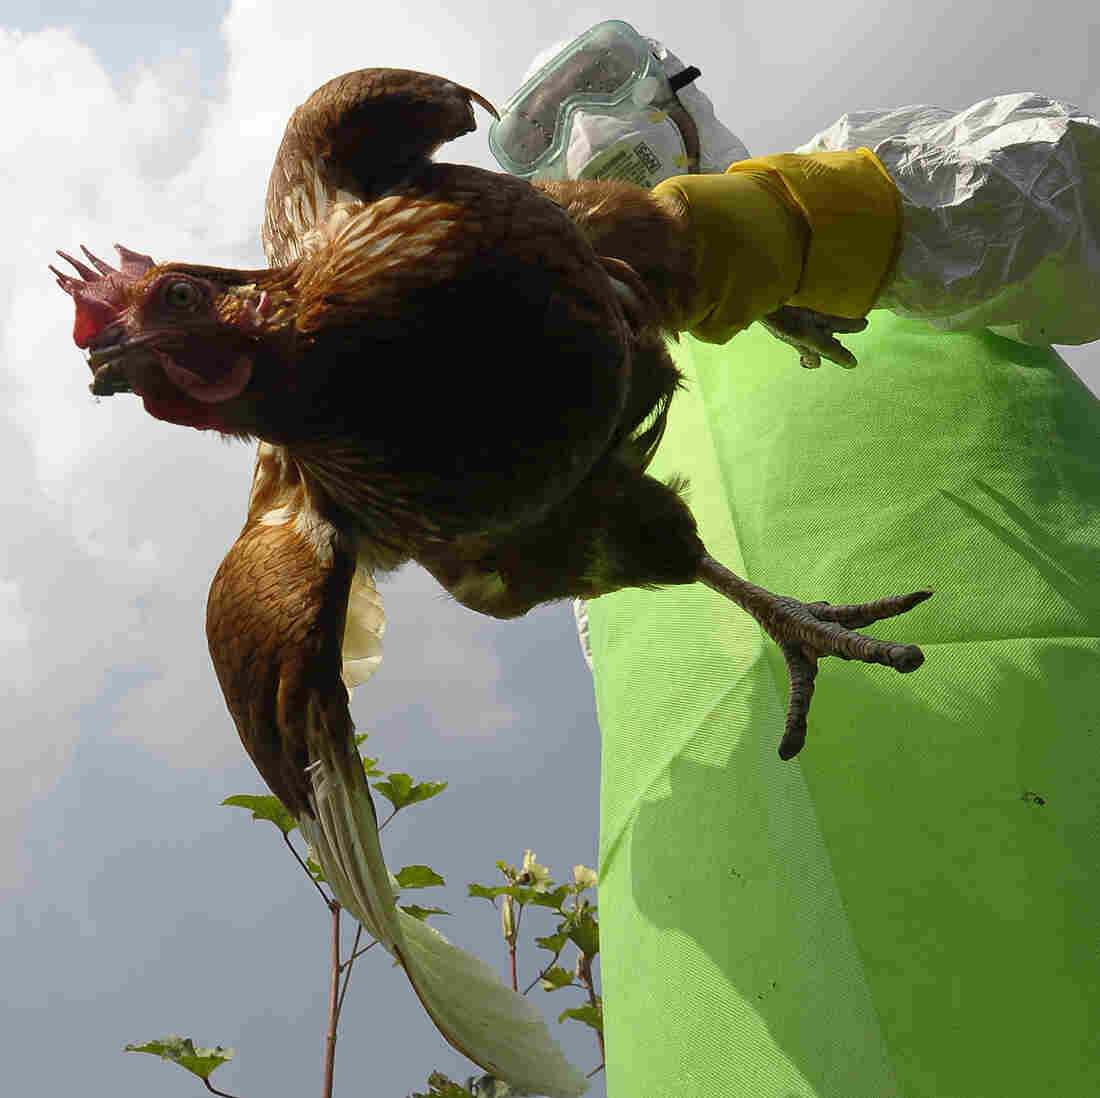 Some scientists think new types of bird flus should arise only in chickens, not in labs. Here a worker collects poultry on a farm in Kathmandu, Nepal, where the H5N1 virus was infecting animals in October 2011.